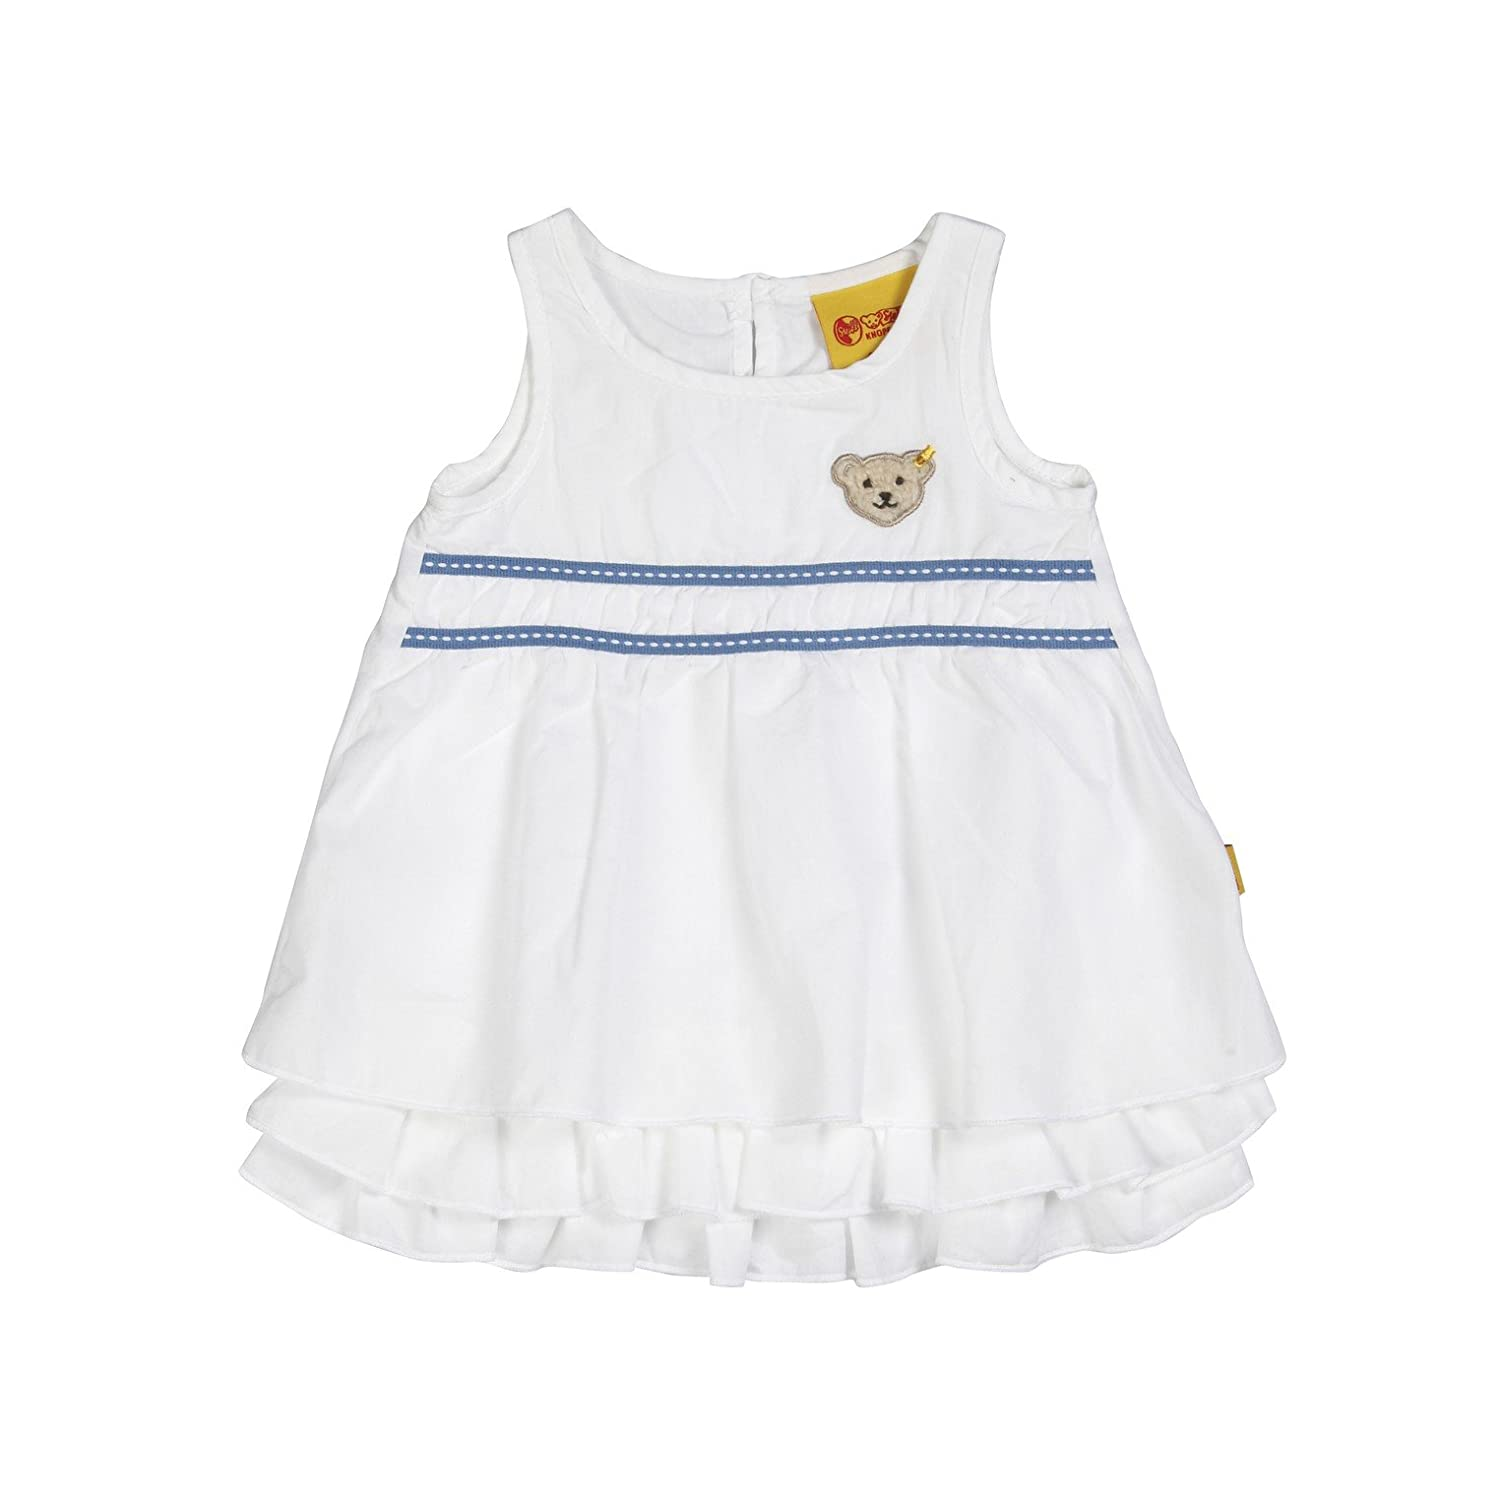 Steiff Dress Mini Girl Riviera Spring/Summer 2013,White,Size 62-116